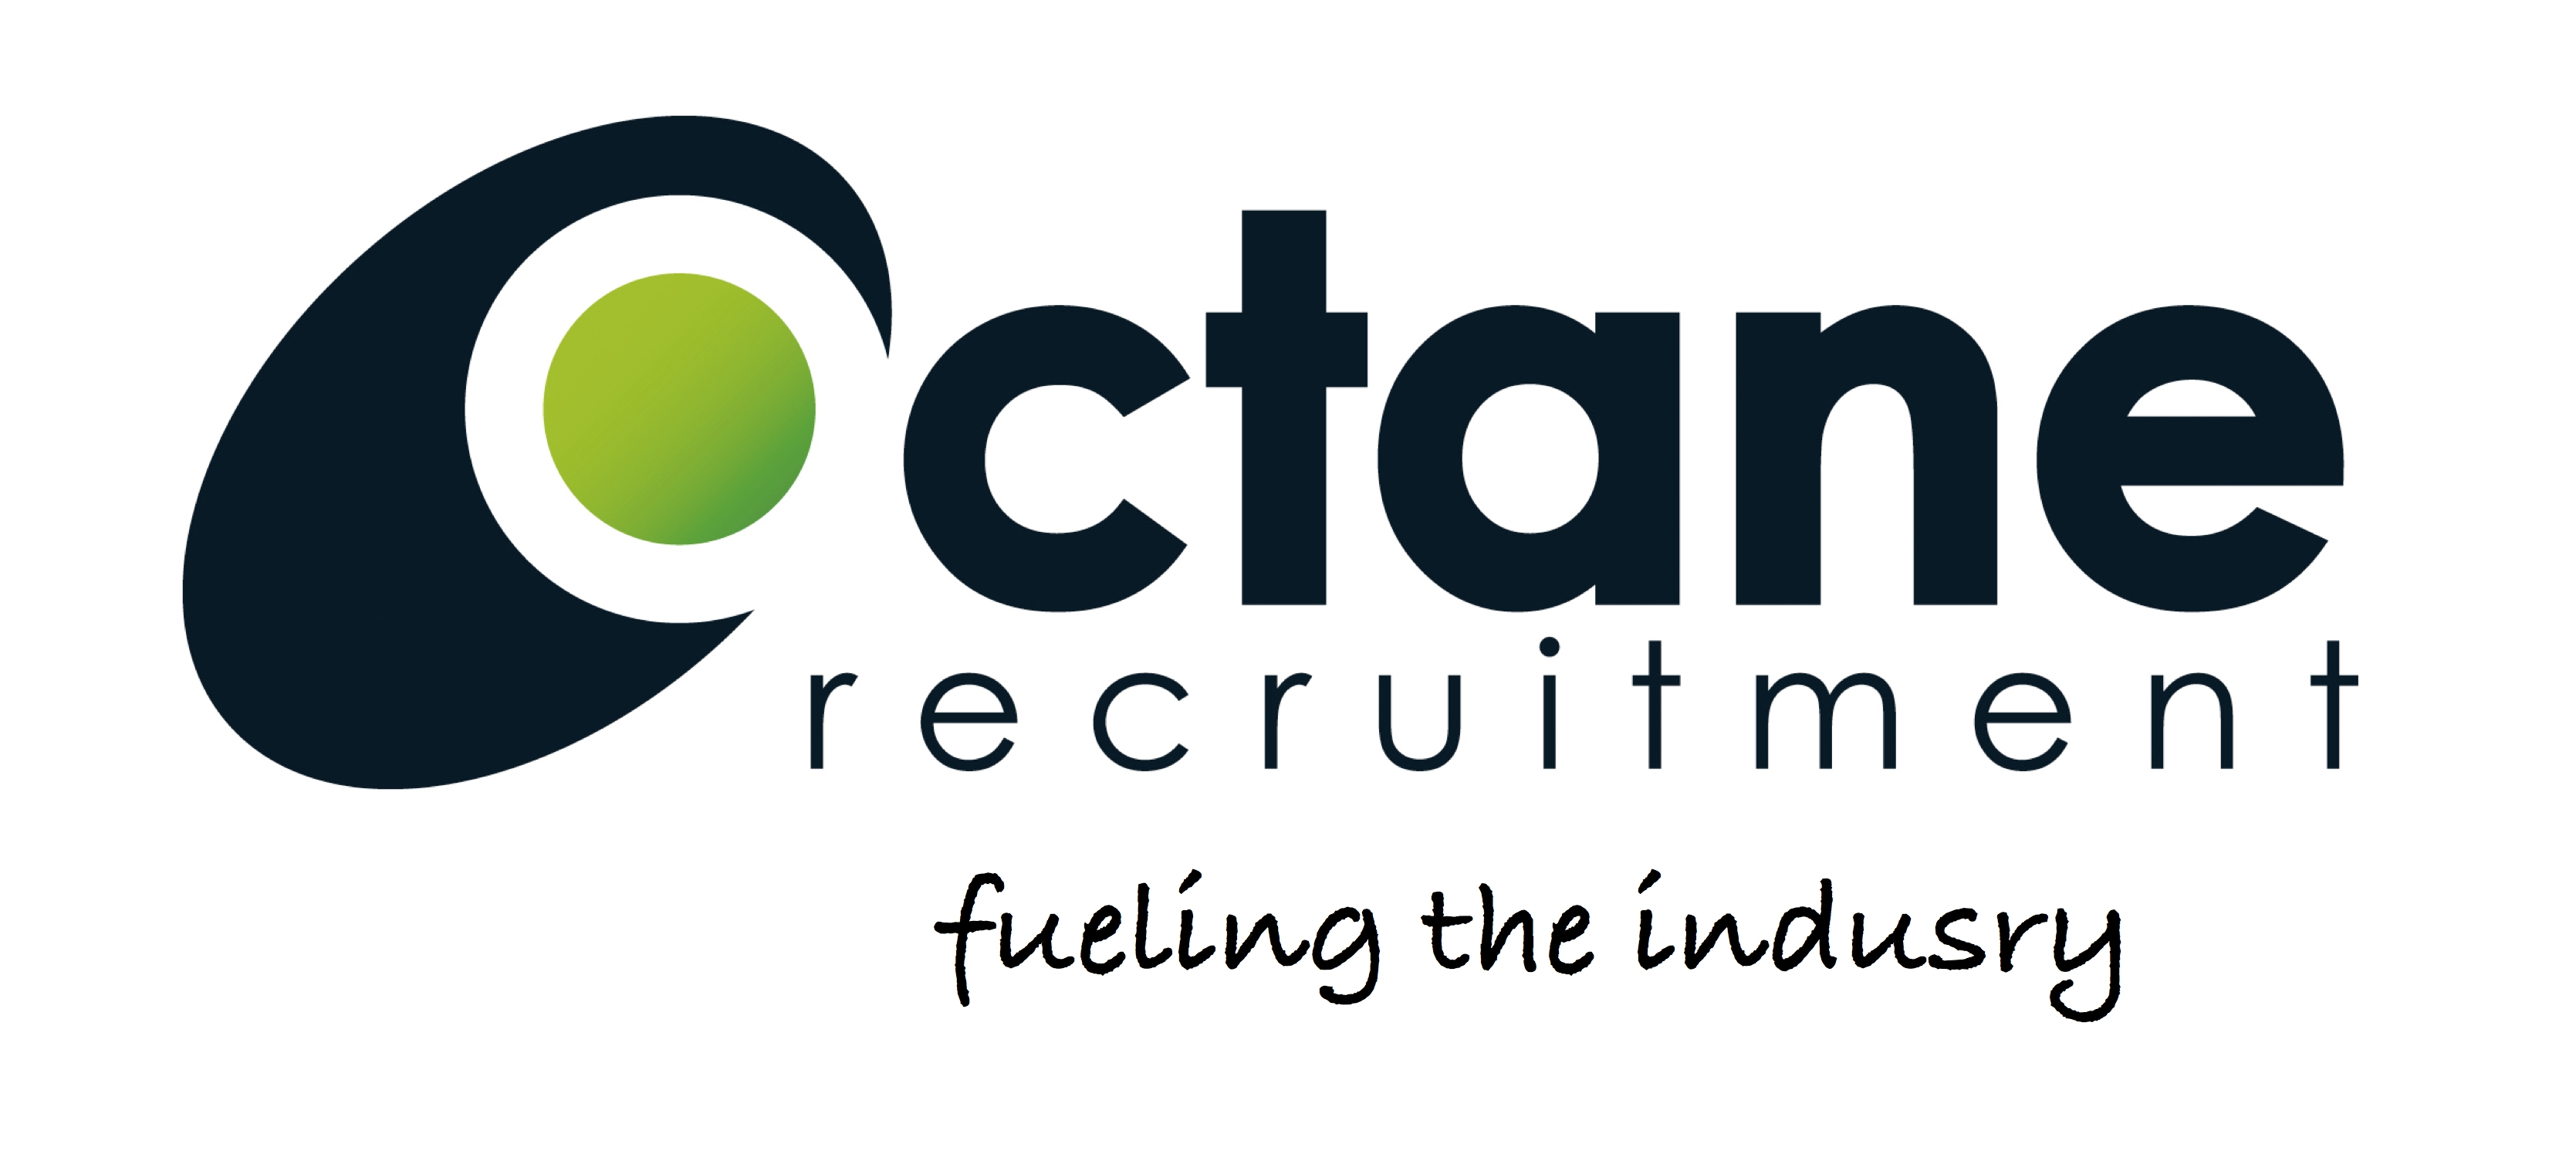 interview tips octanerecruitment octanerecruitment home about us